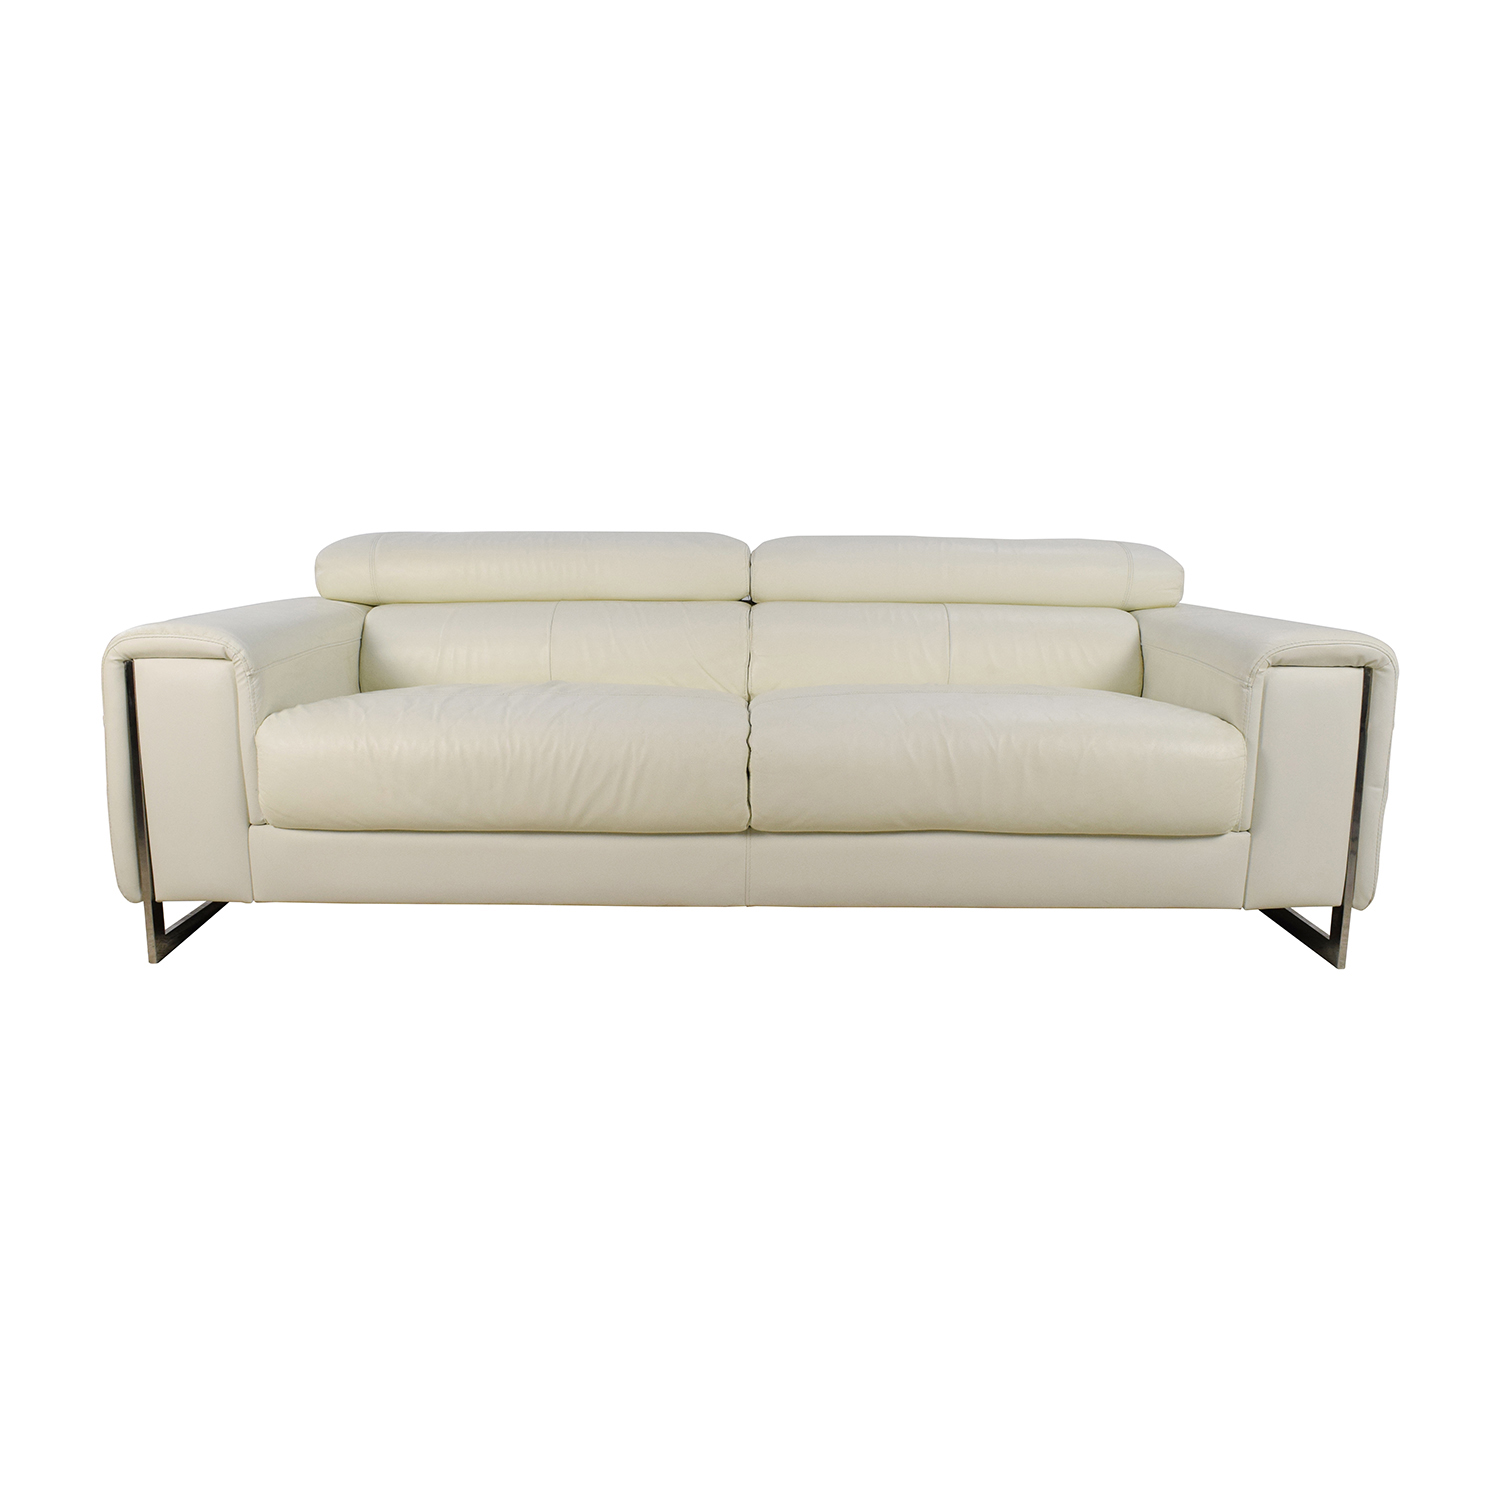 j m paquet sofa outdoor patio cushions soho leather by lazar industries is